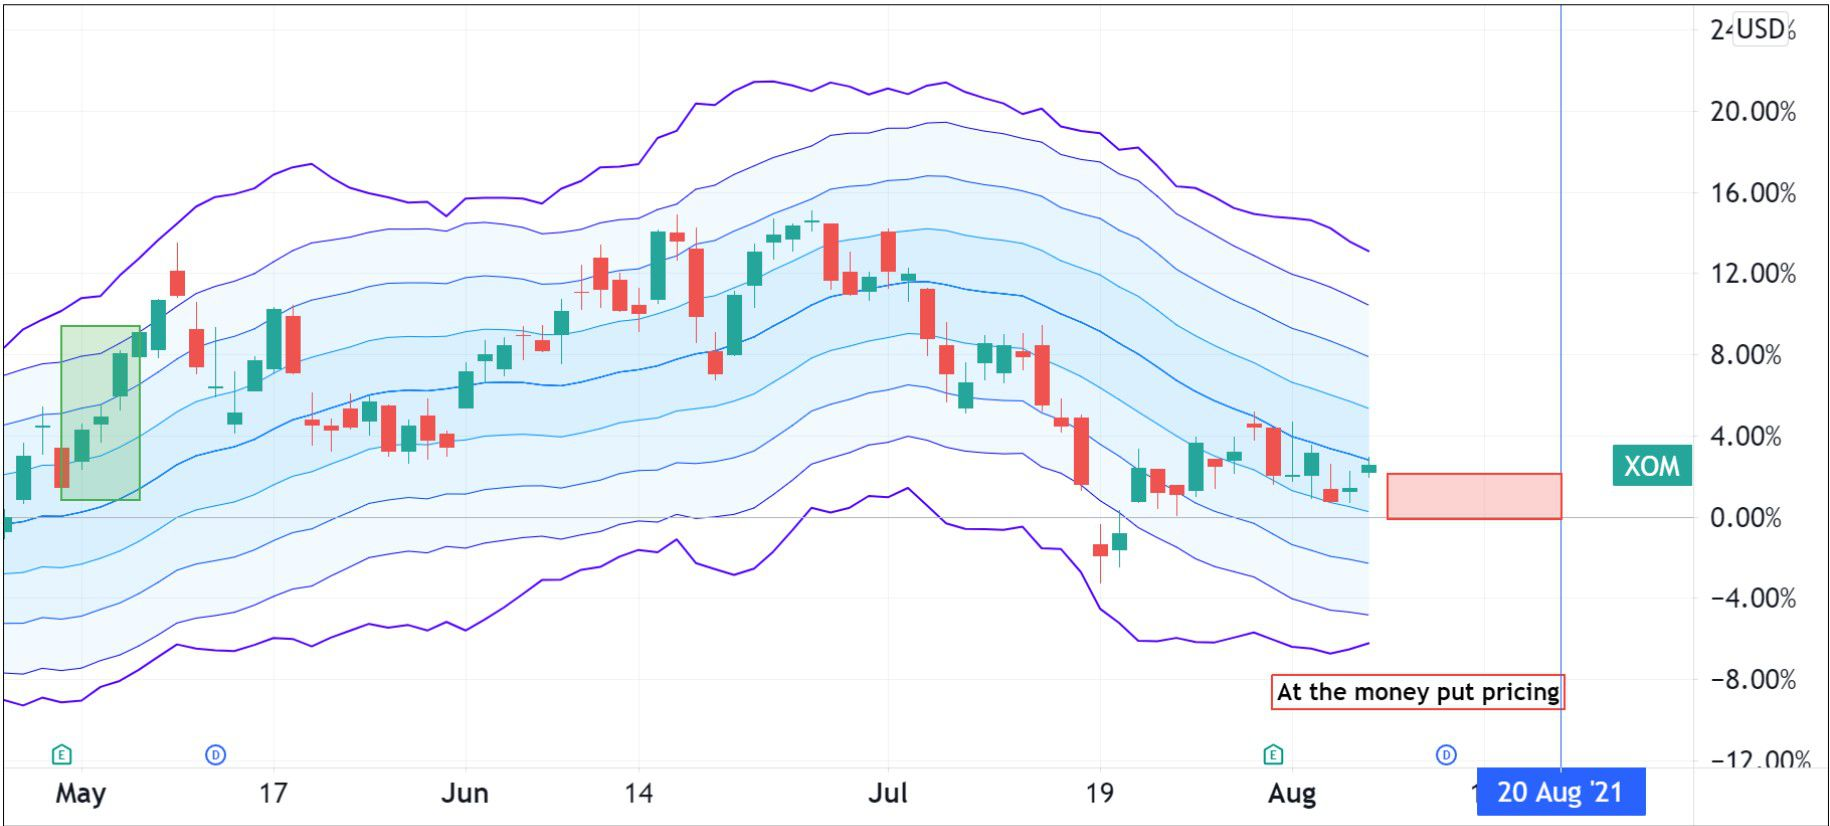 Option pricing for Exxon Mobil Corporation (XOM)